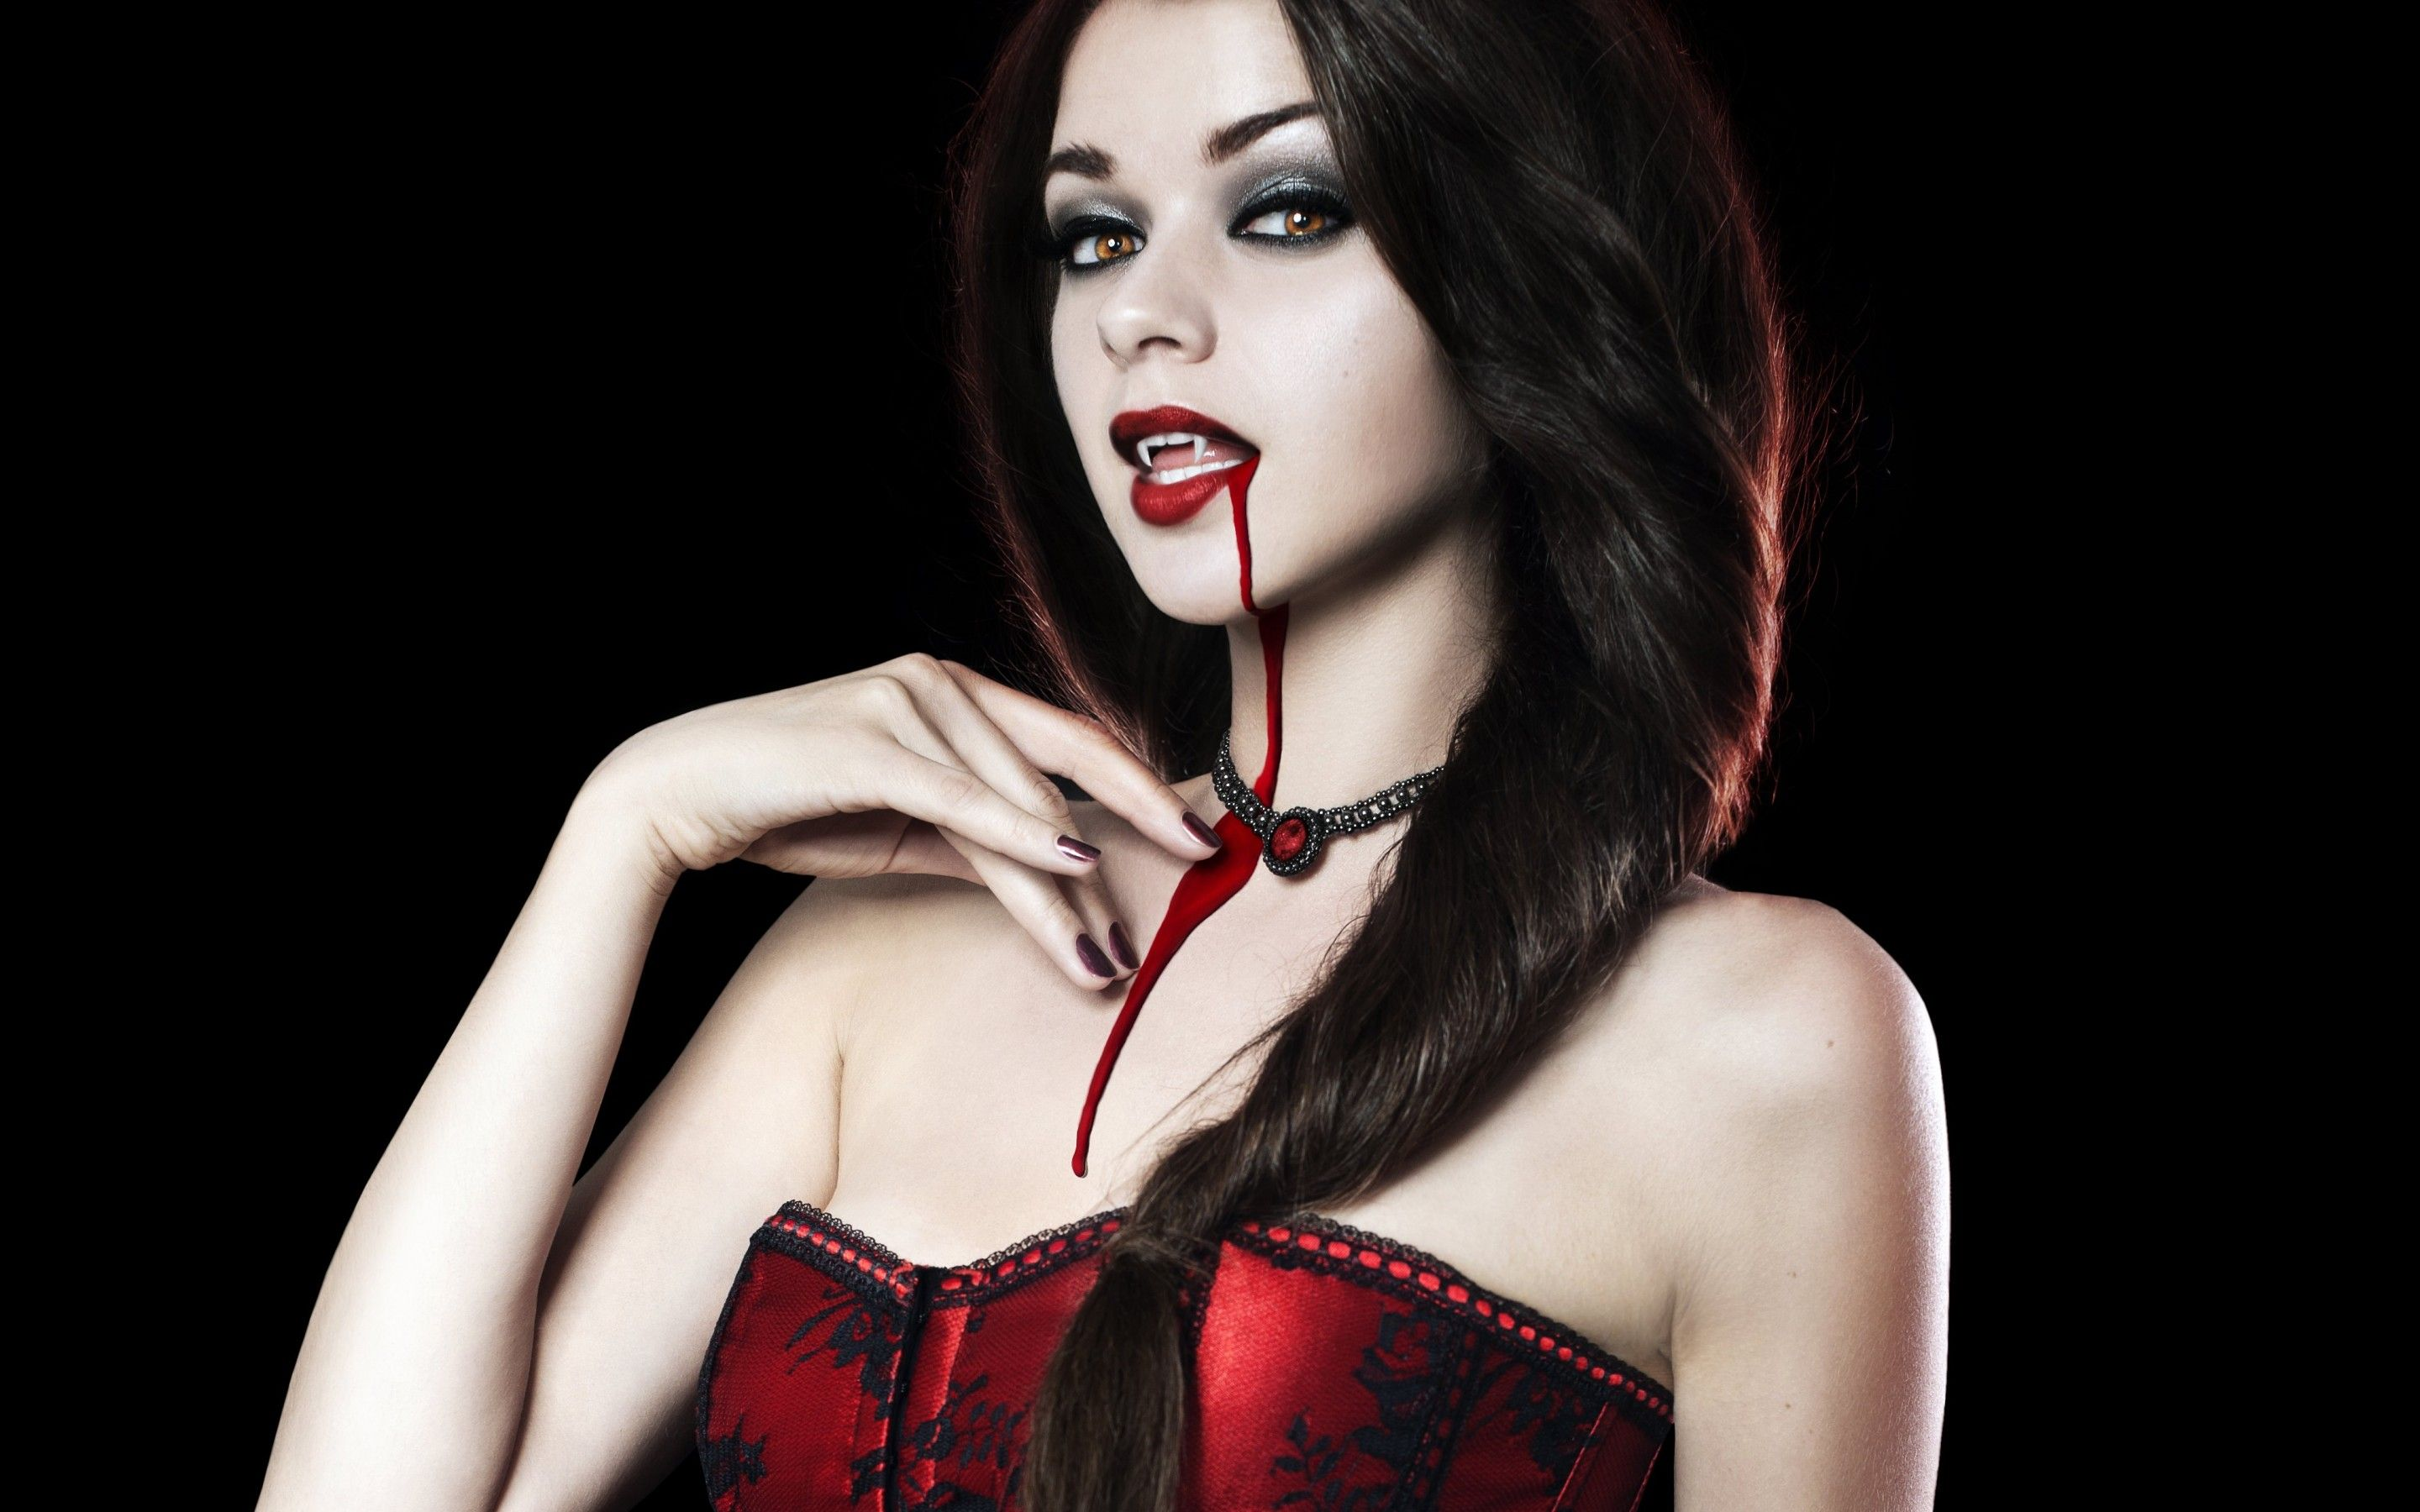 Vampire woman girl pics hentia images